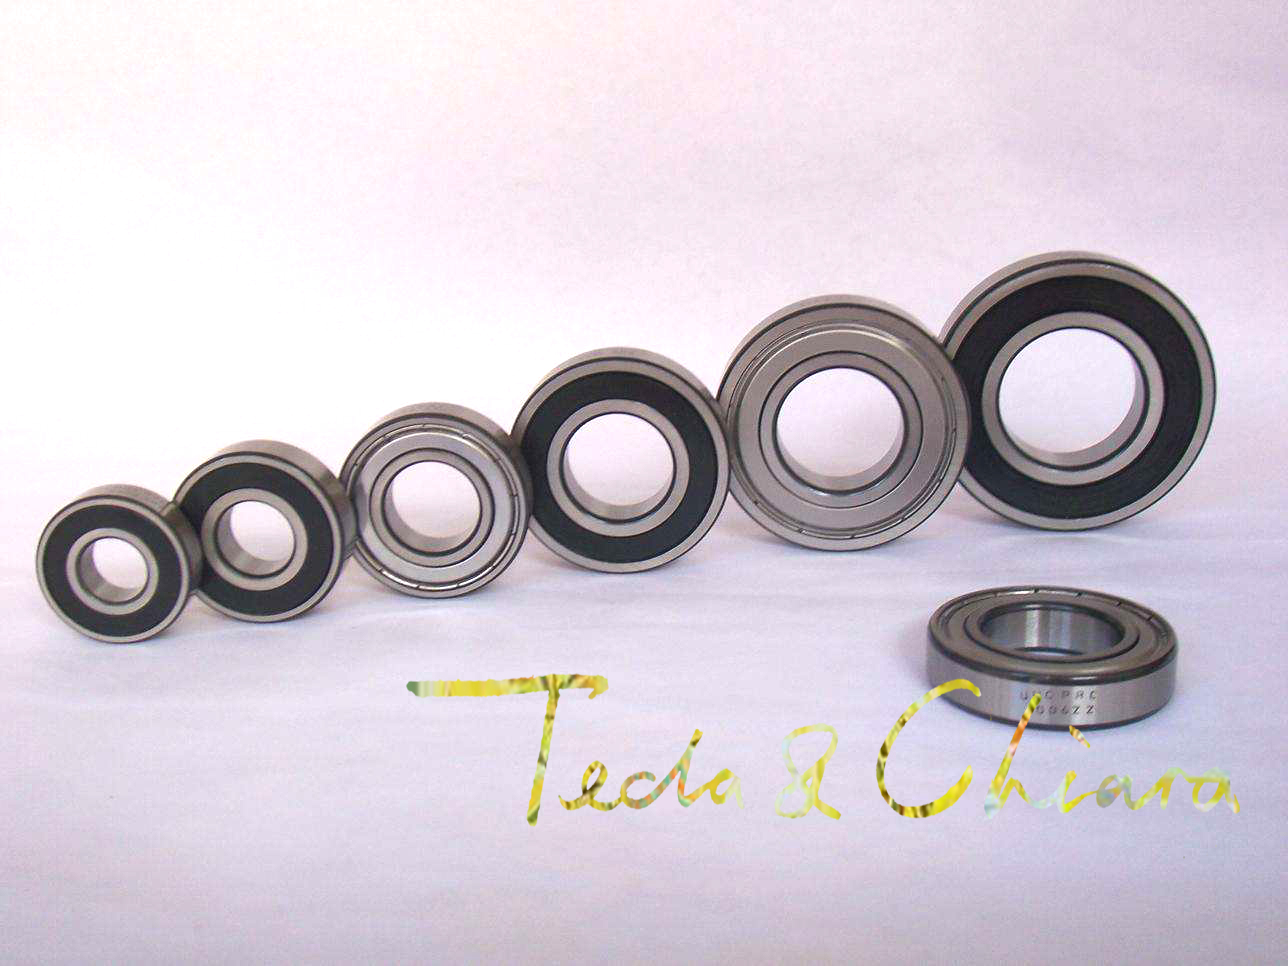 693 693ZZ 693RS 693-2Z 693Z 693-2RS ZZ RS RZ 2RZ R830ZZ 1000093 639/3ZZ Deep Groove Ball Bearings 3 x 8 x 4mm High Quality toshiba portege z 830